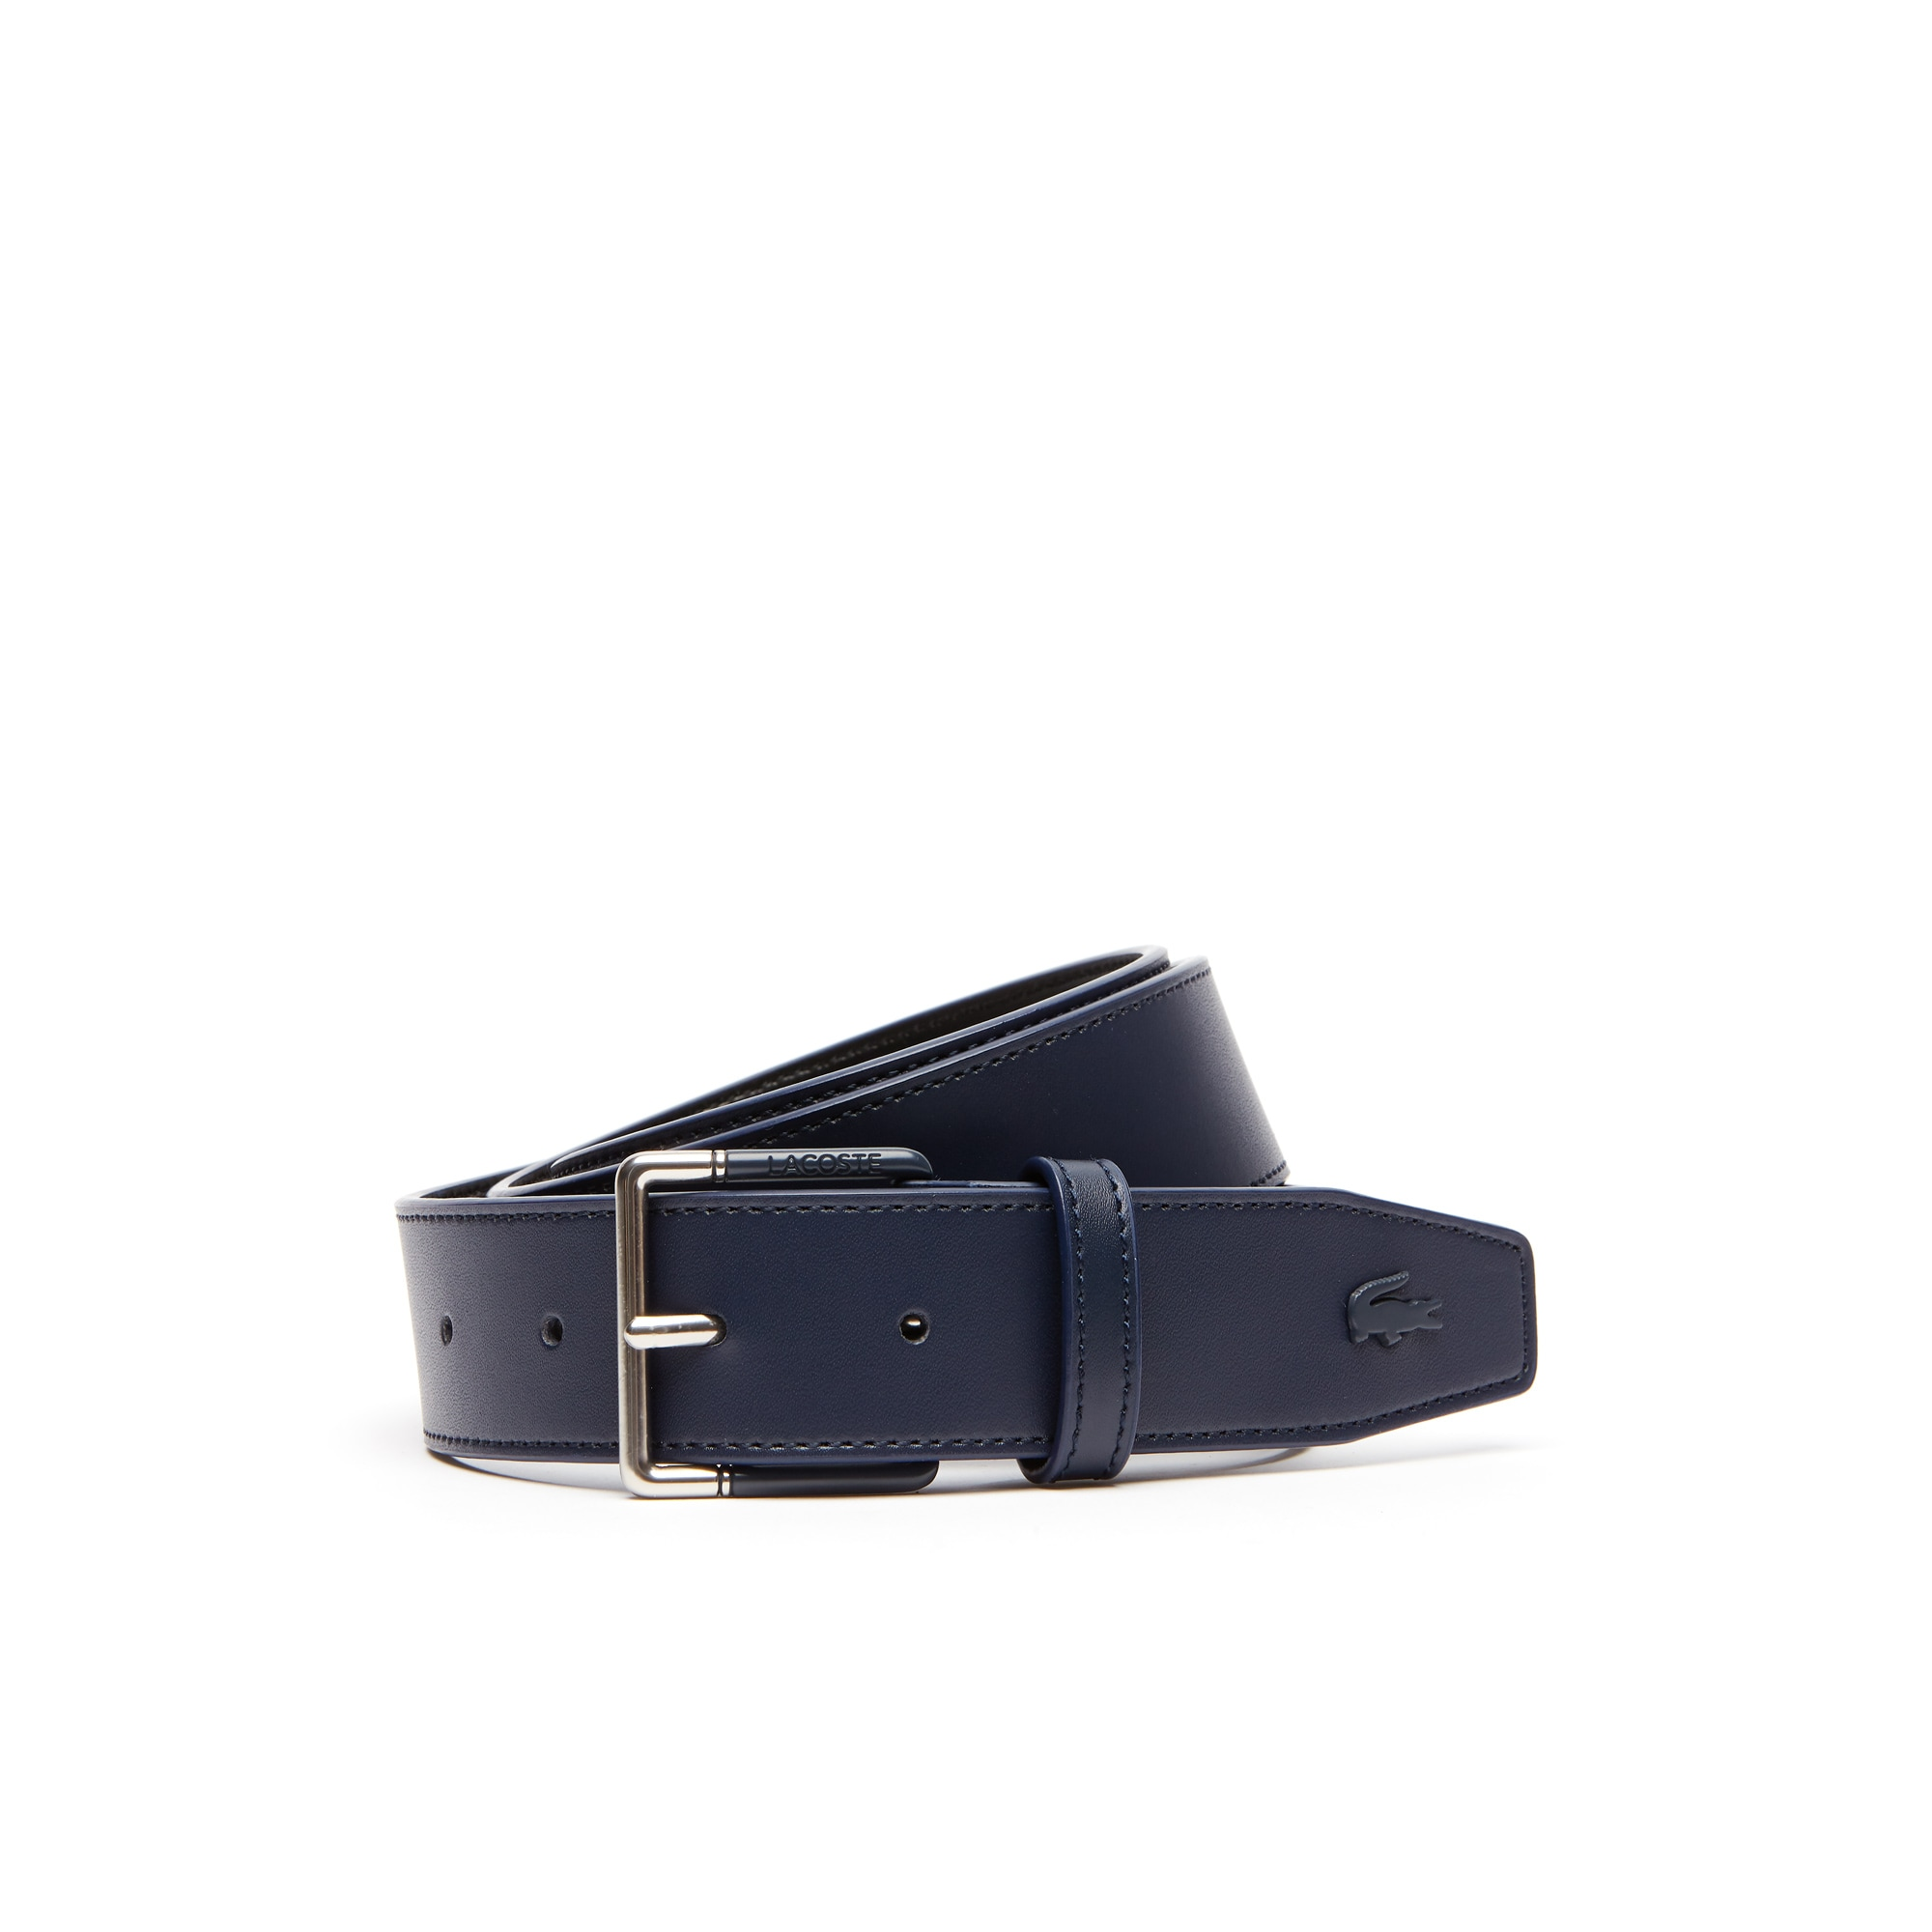 c5fa8ae6f3 Men's Lacoste Engraved Tongue Buckle Leather Belt